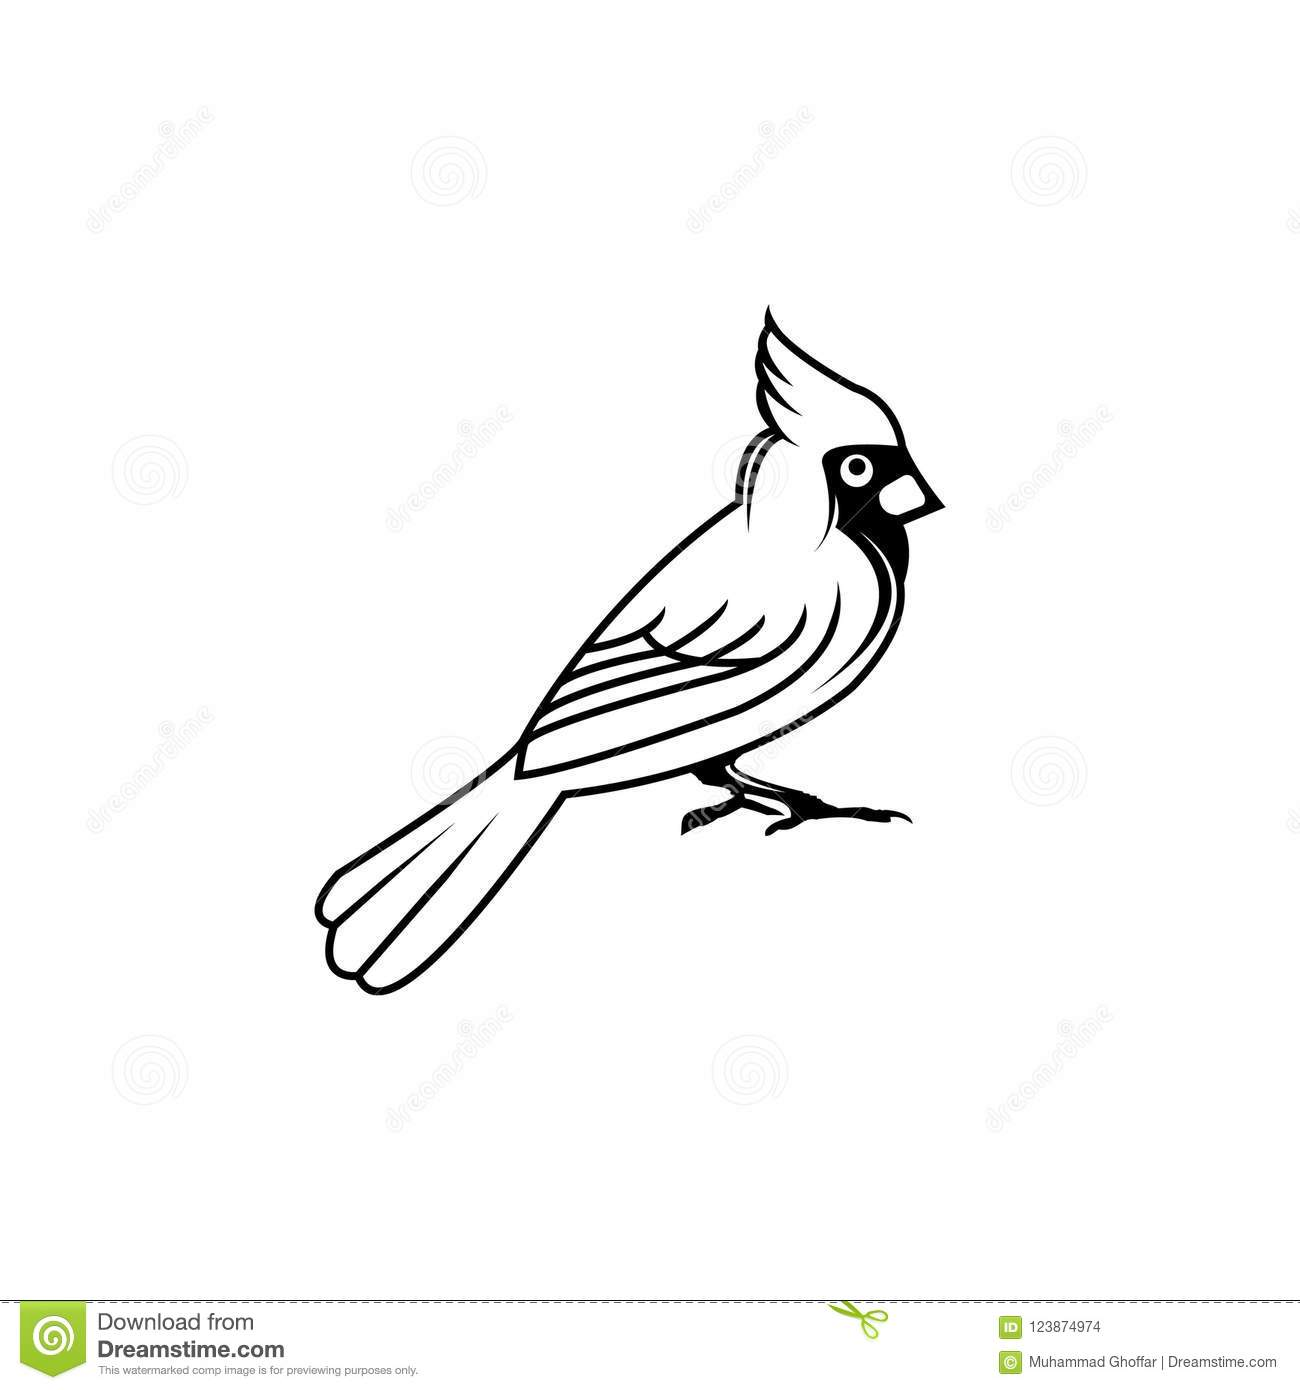 Cardinal Flying Silhouette Outline Wiring Diagrams Tda5140a Brushless Dc Motor Circuit And Datasheet Bird Vector Illustration Black Flat Style Stock Rh Dreamstime Com Egret